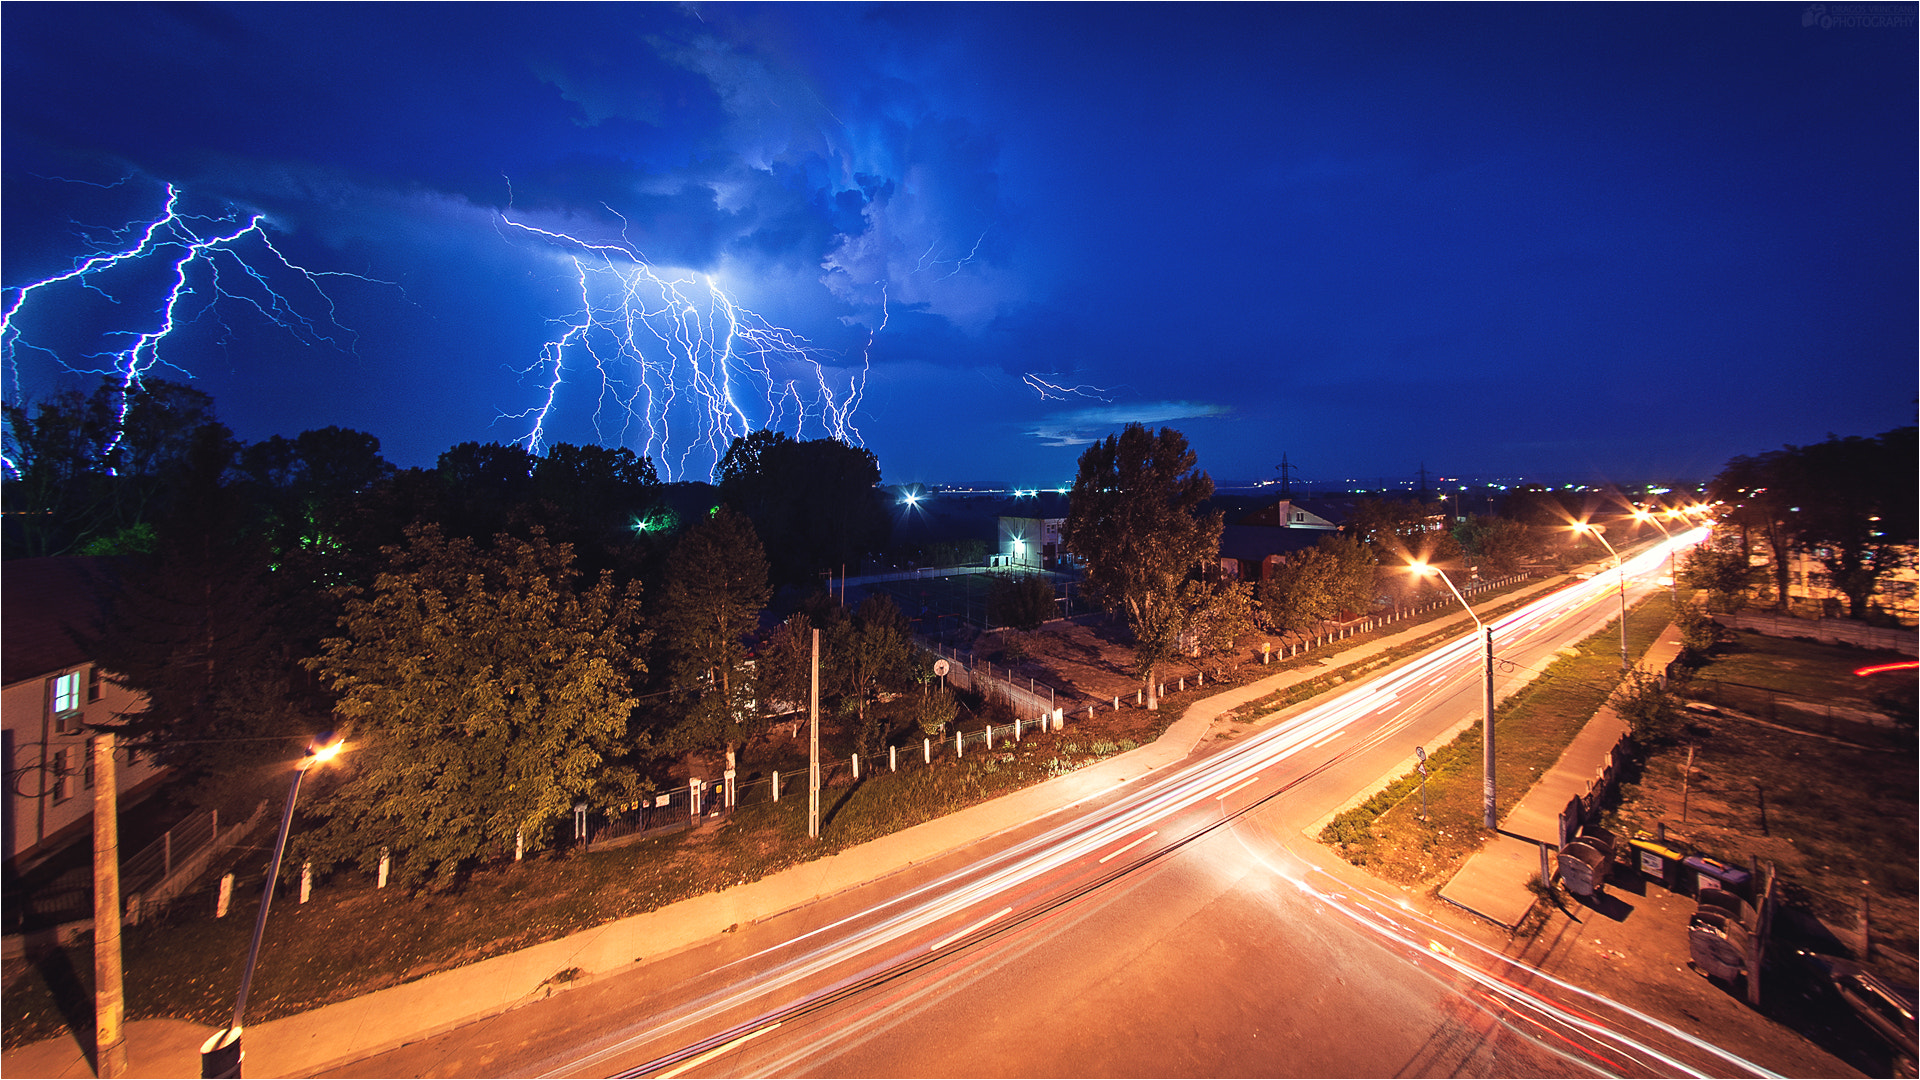 Photograph Lighting storm by Dragos Vrinceanu on 500px